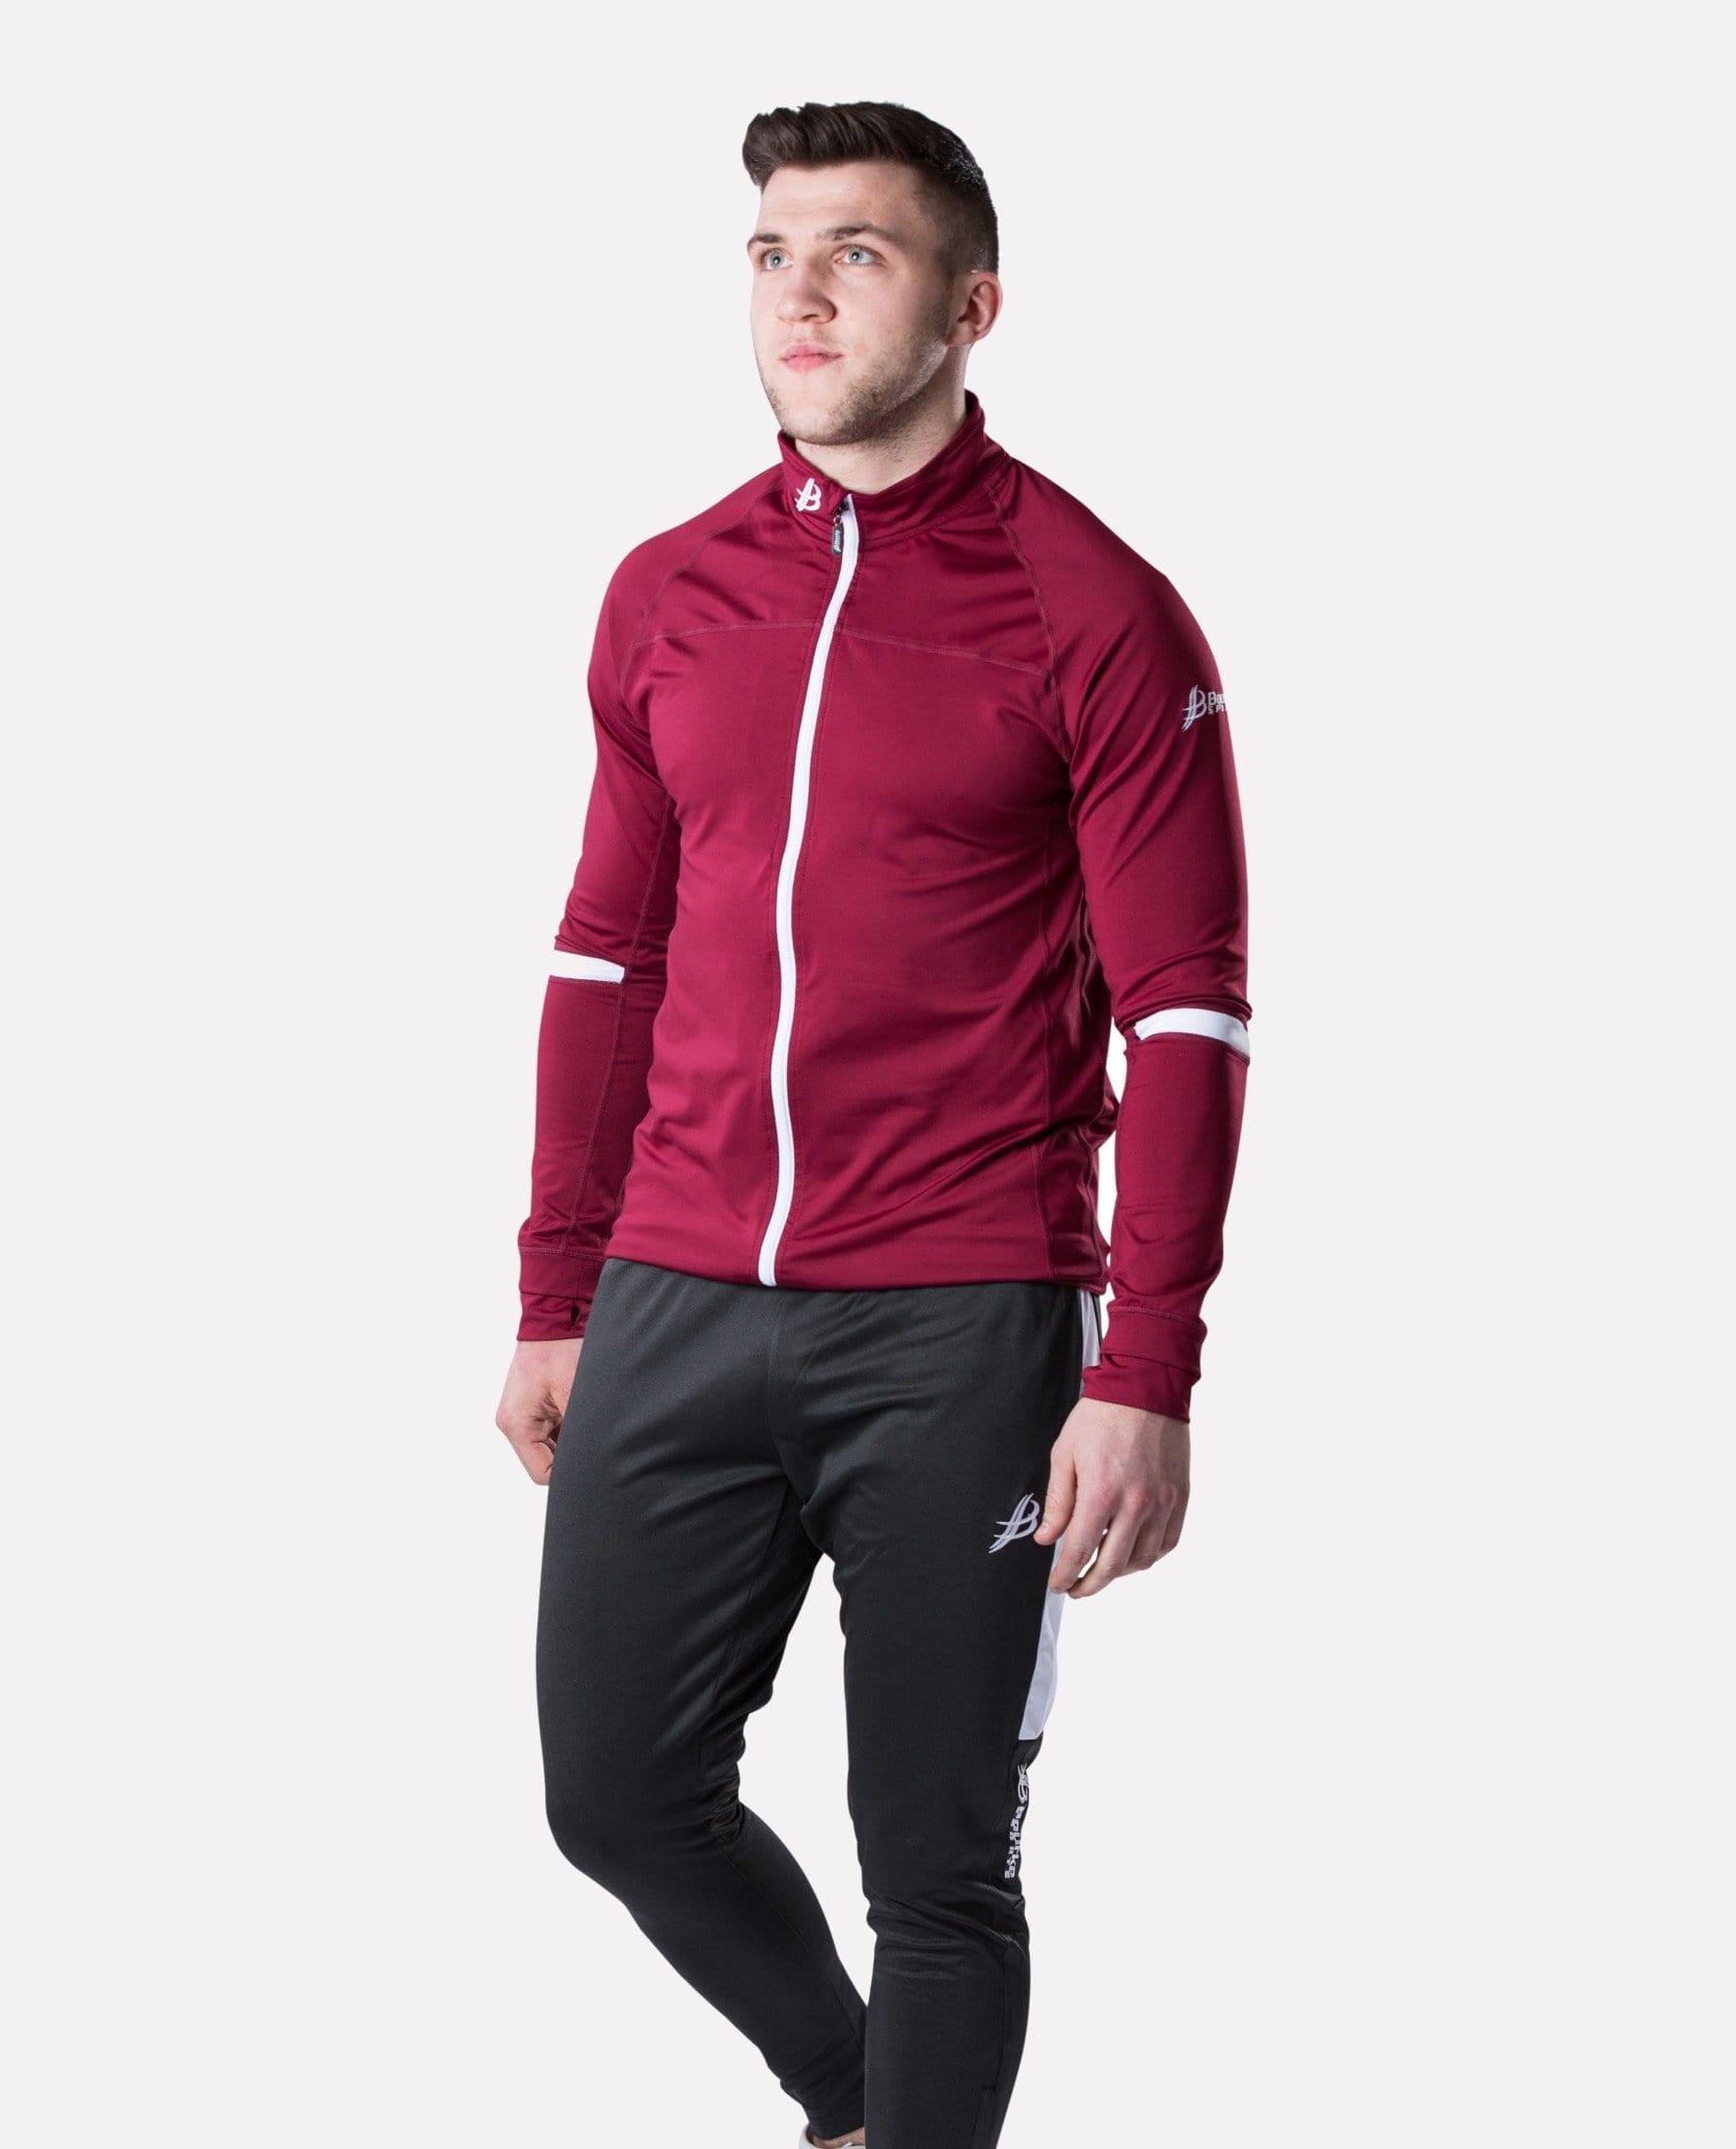 ALPHA Adult Full Zip (Maroon/White)